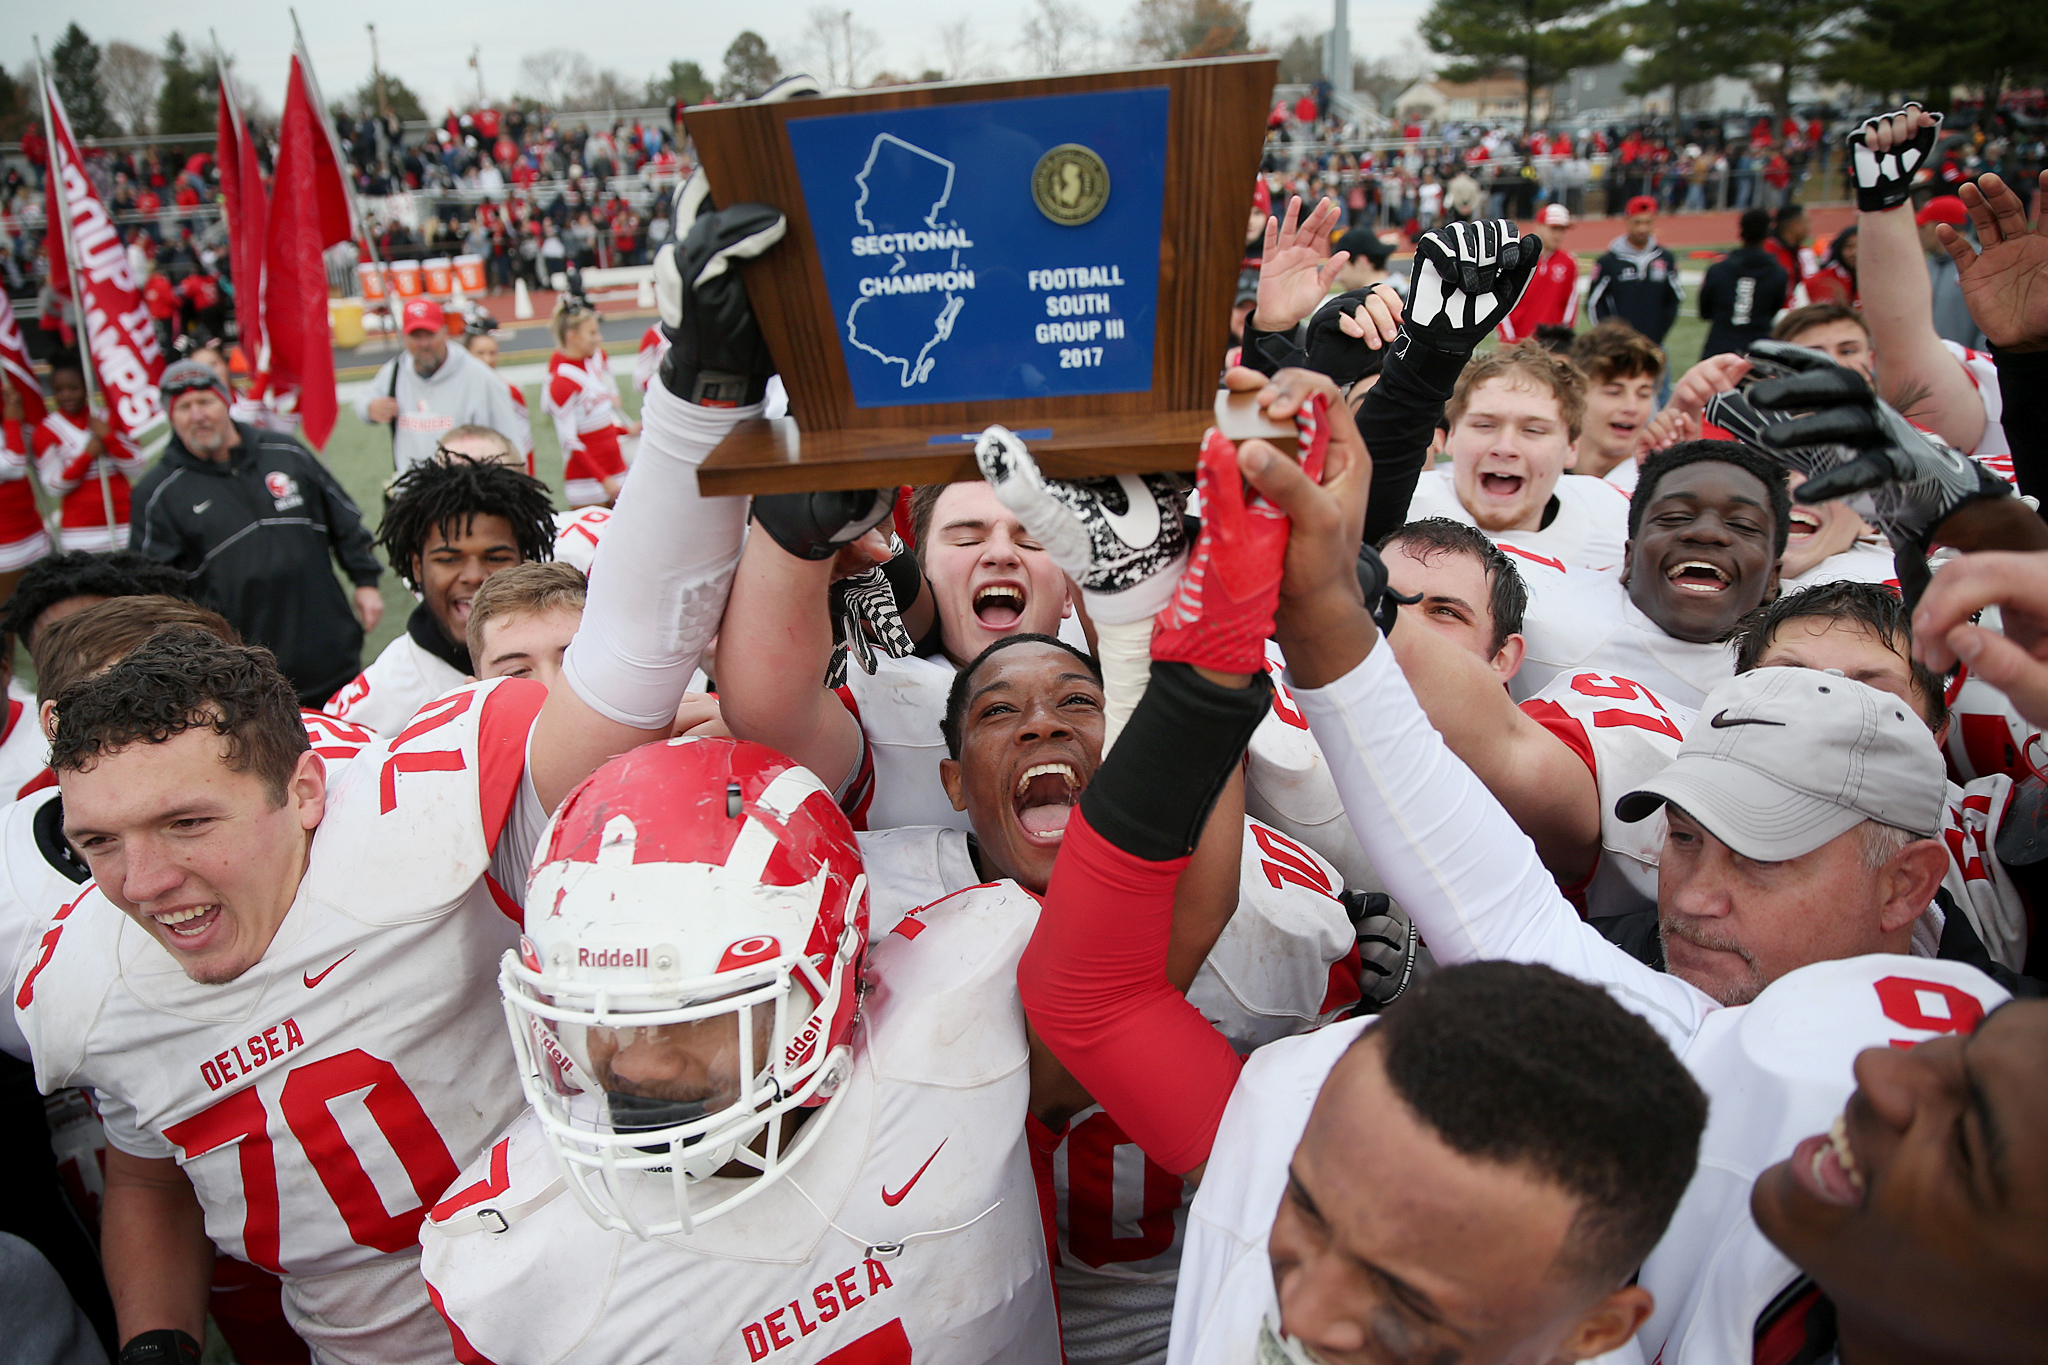 Delsea players celebrate with the South Jersey Group 3 championship trophy after defeating Woodrow Wilson.